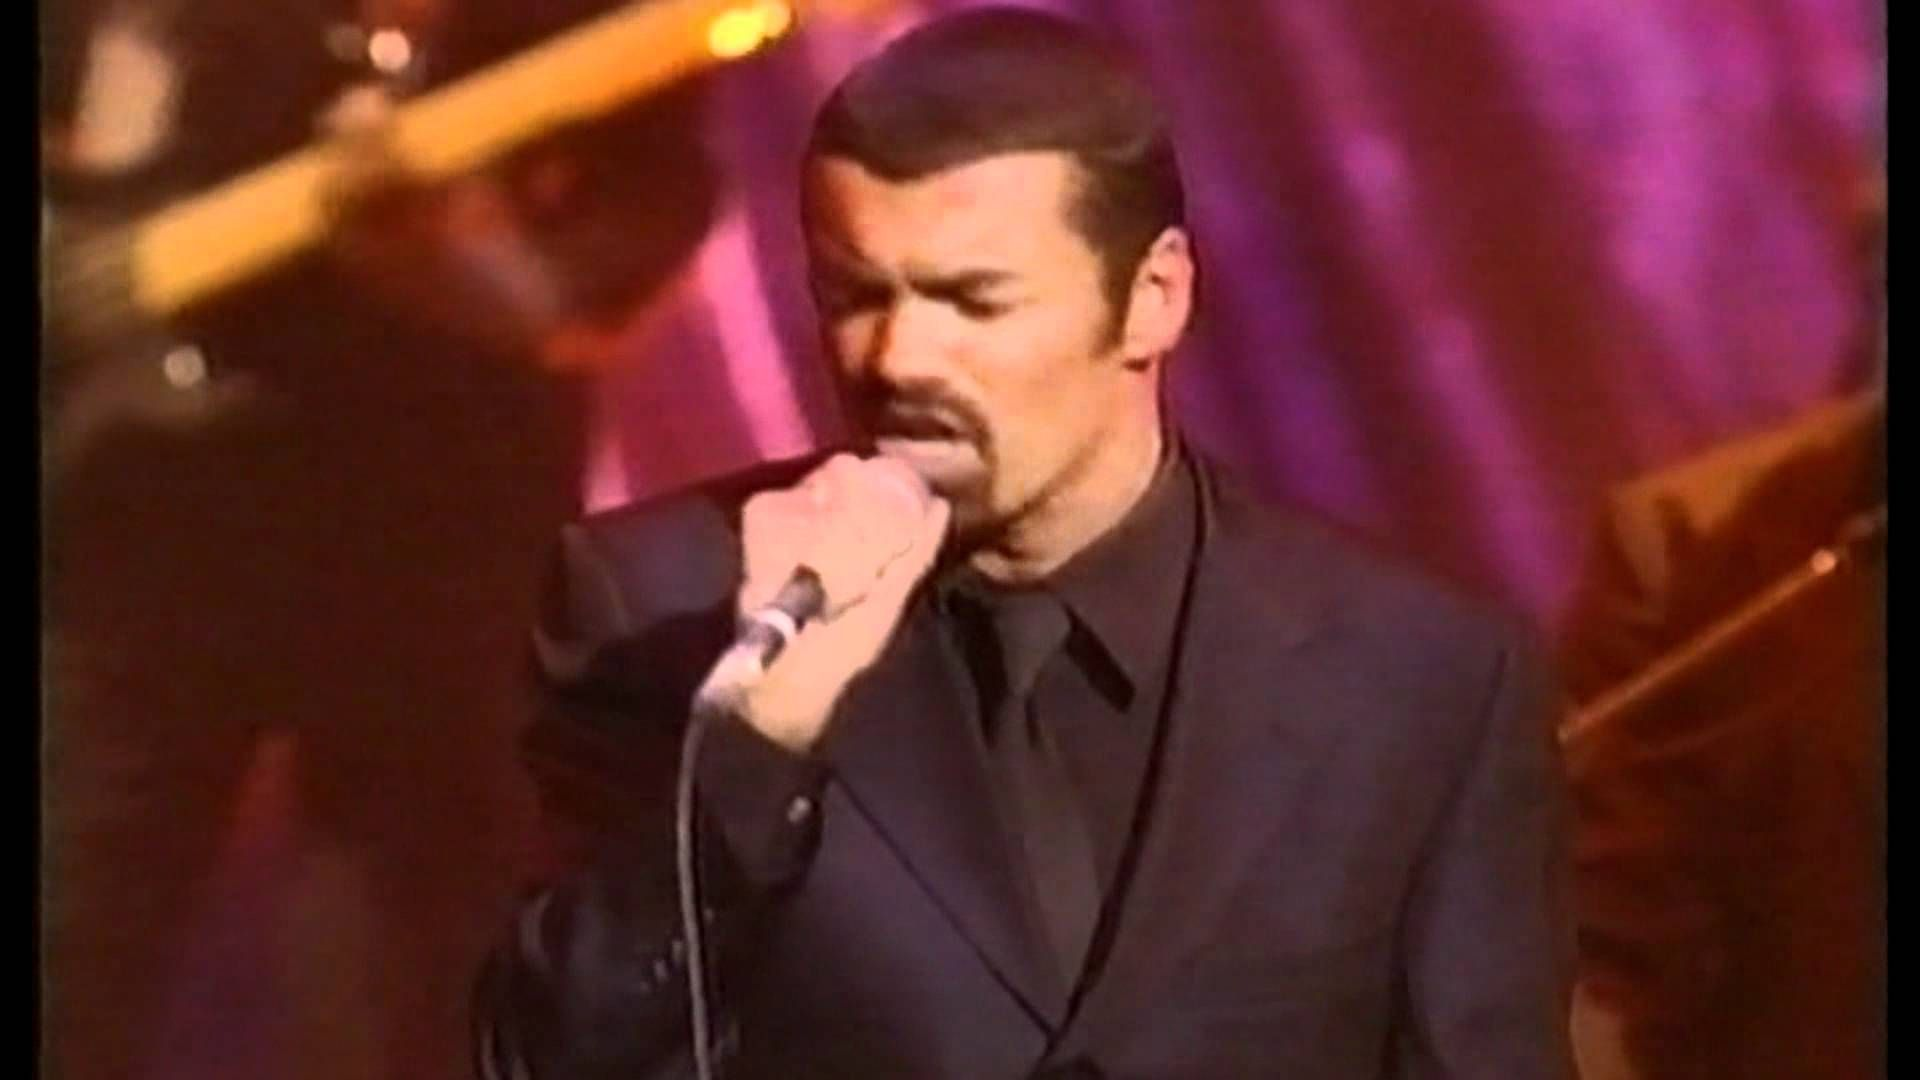 Famed Performer George Michael Performs His Mega Hit Song Fast